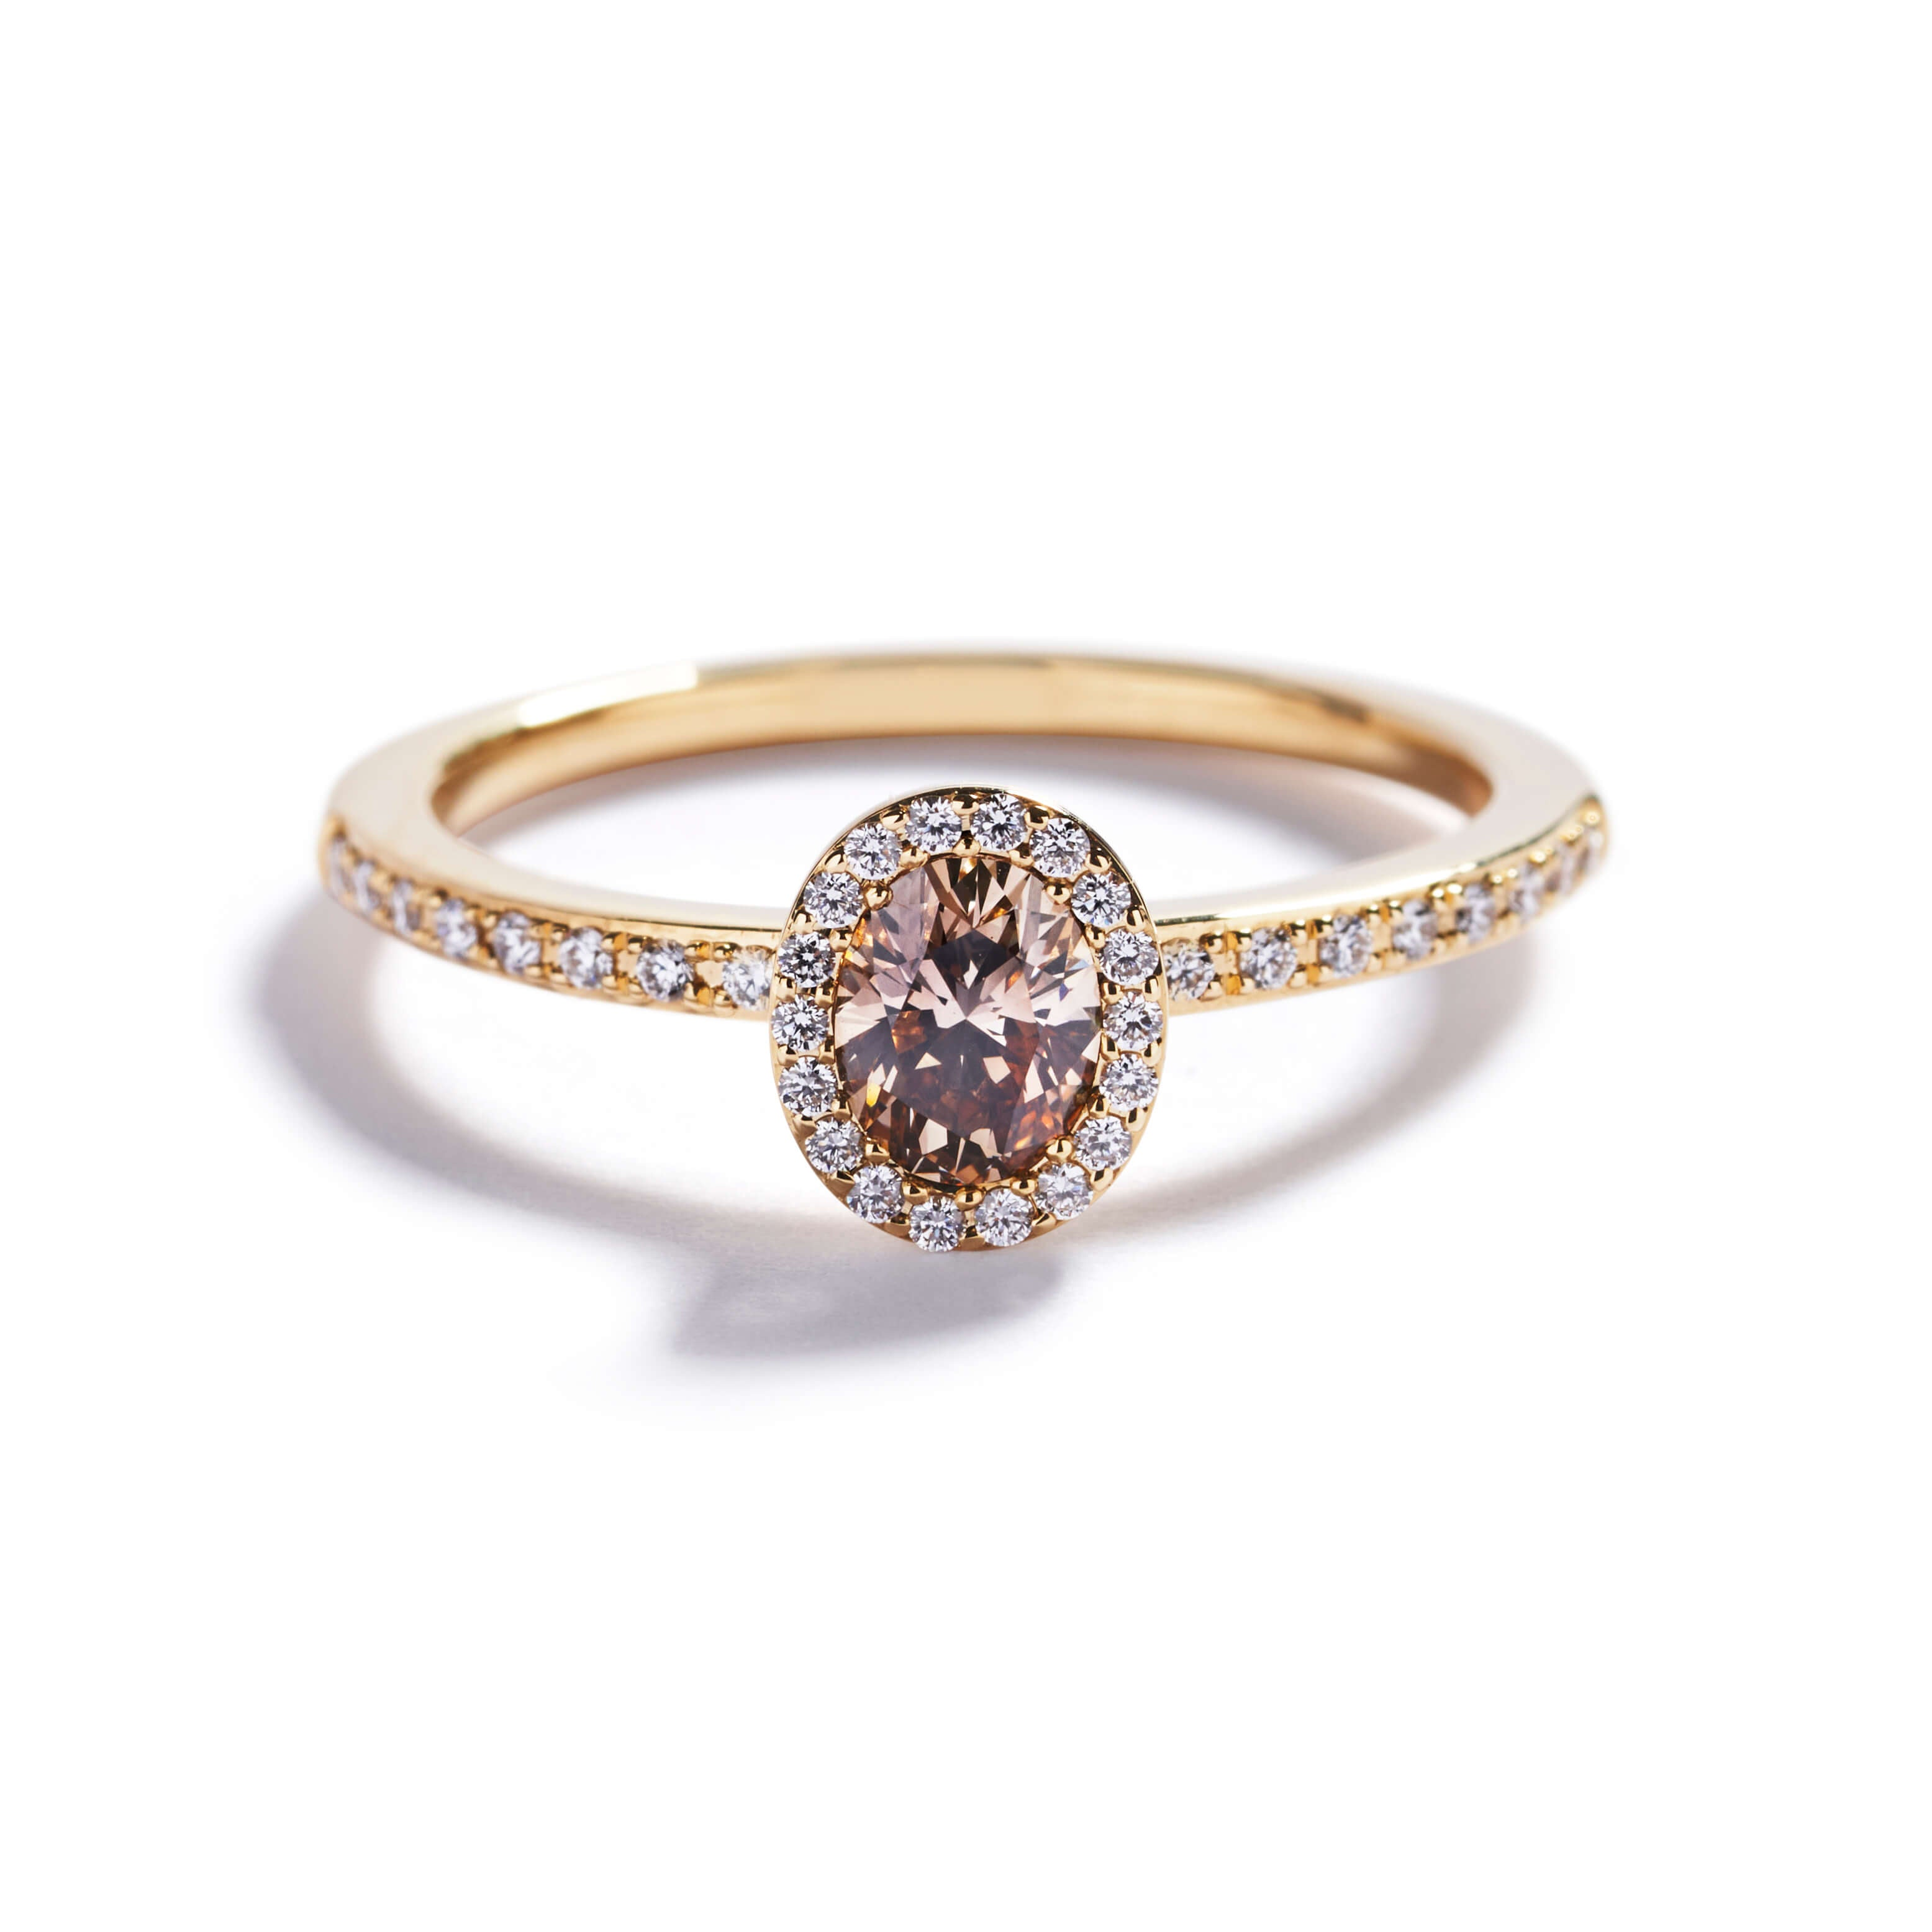 Rosetring med 0,38 ct. oval Argyle Champagne diamant